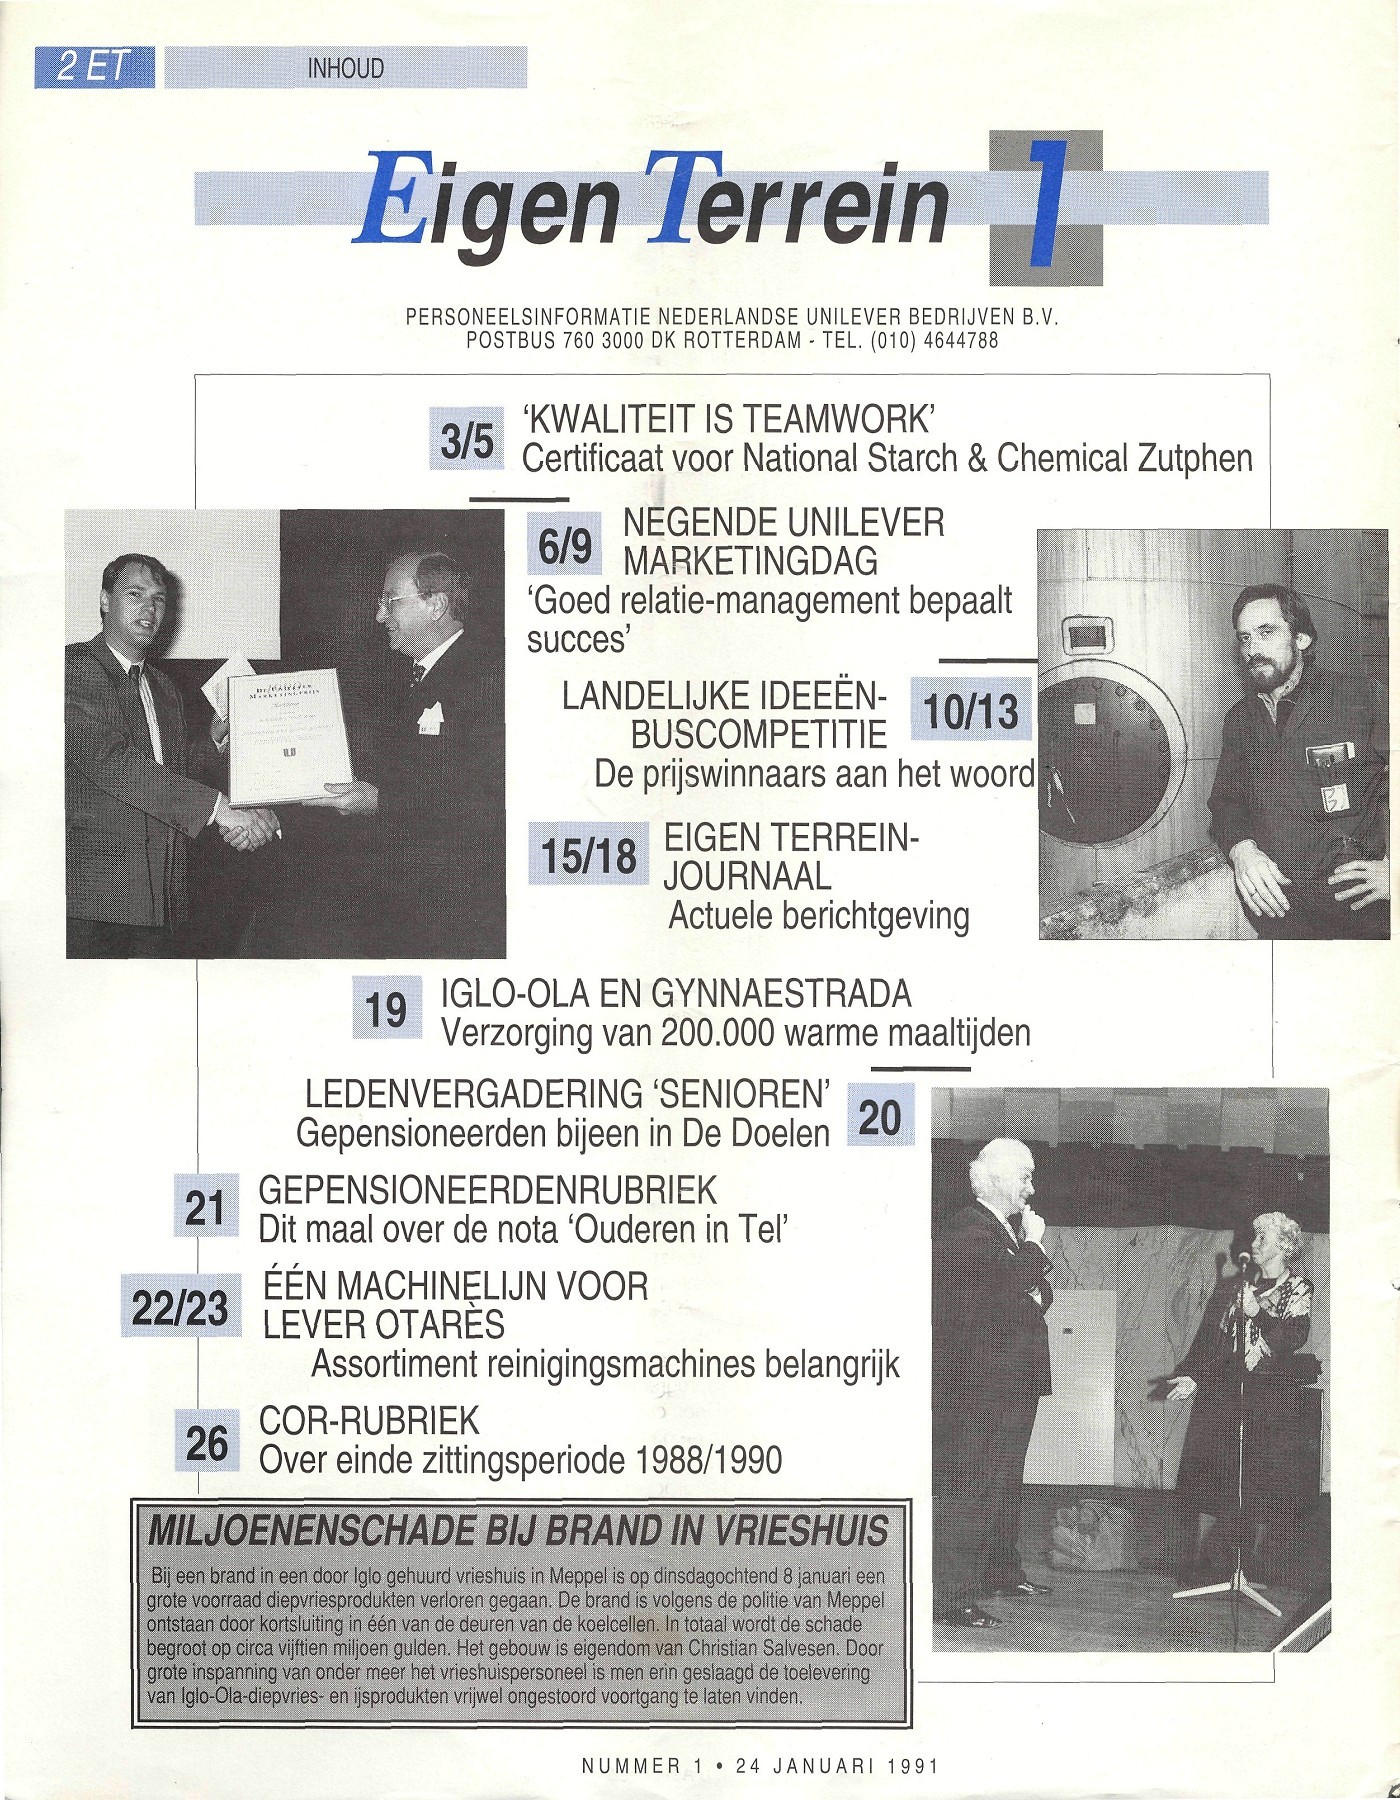 Bedrijfskolom Tapijt Op Eigen Terrein 1991 46 No 1 Pages 1 32 Text Version Fliphtml5